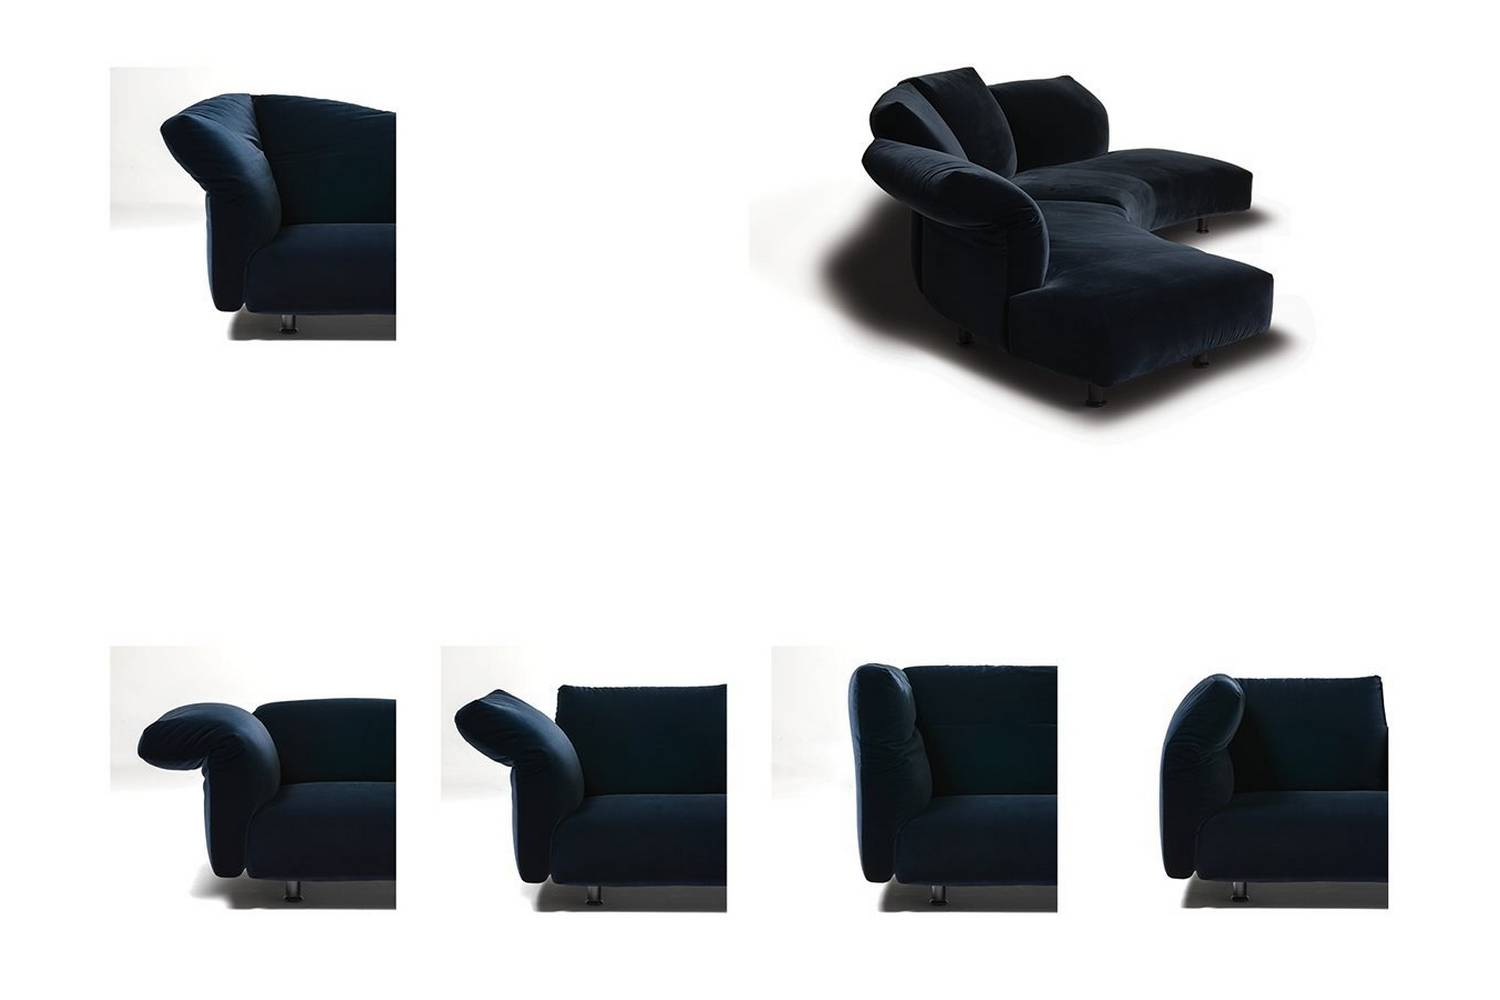 Divani Edra Prezzo Essential Sofa By Francesco Binfare For Edra Space Furniture